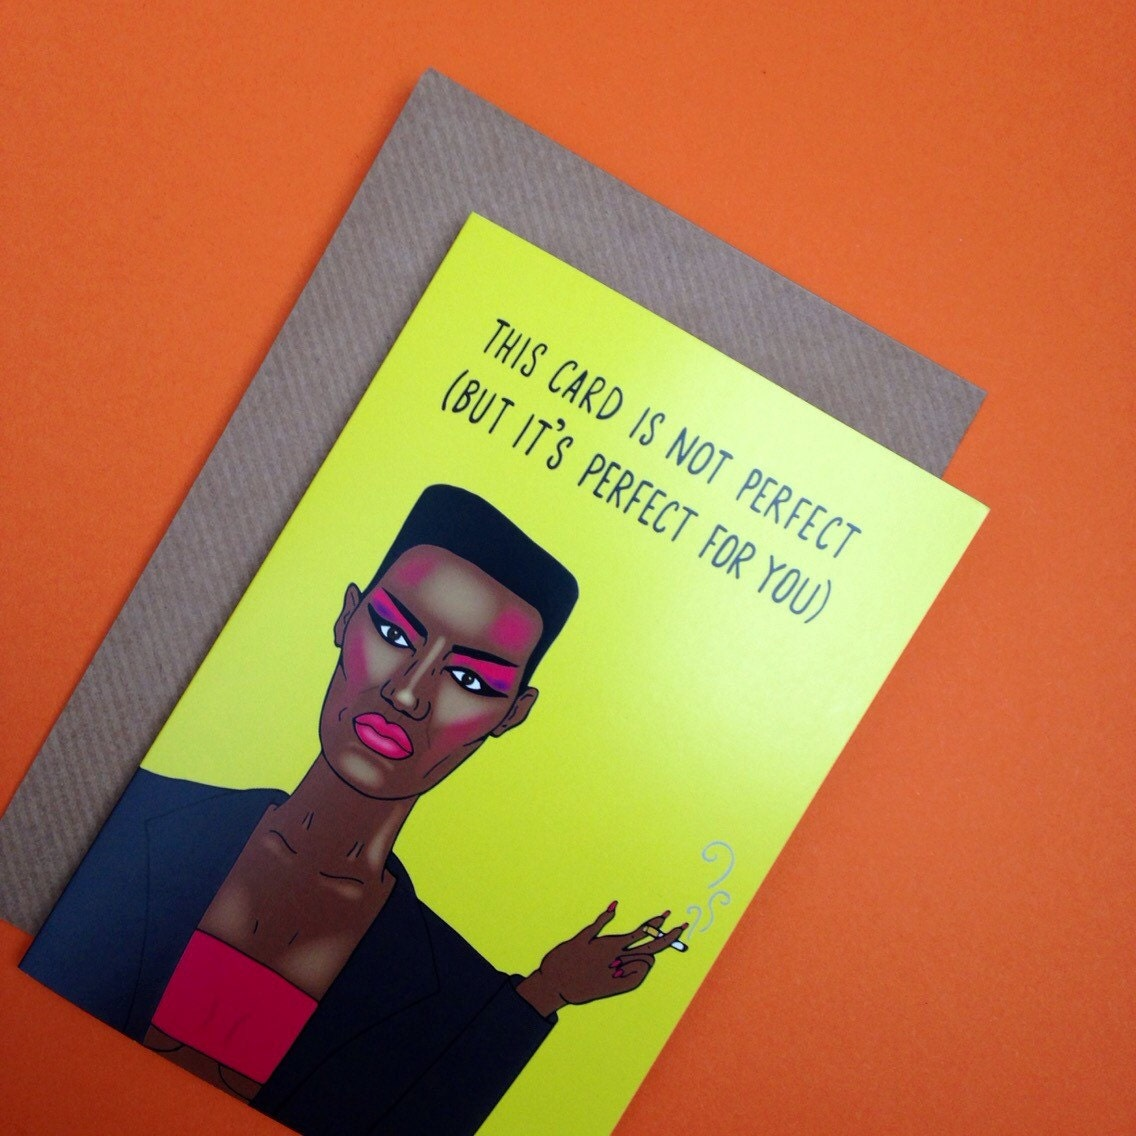 Grace jones inspired greetings card from full colour original grace jones inspired greetings card from full colour original illustration music puns humour birthday christmas valentine blank inside 80s kristyandbryce Images